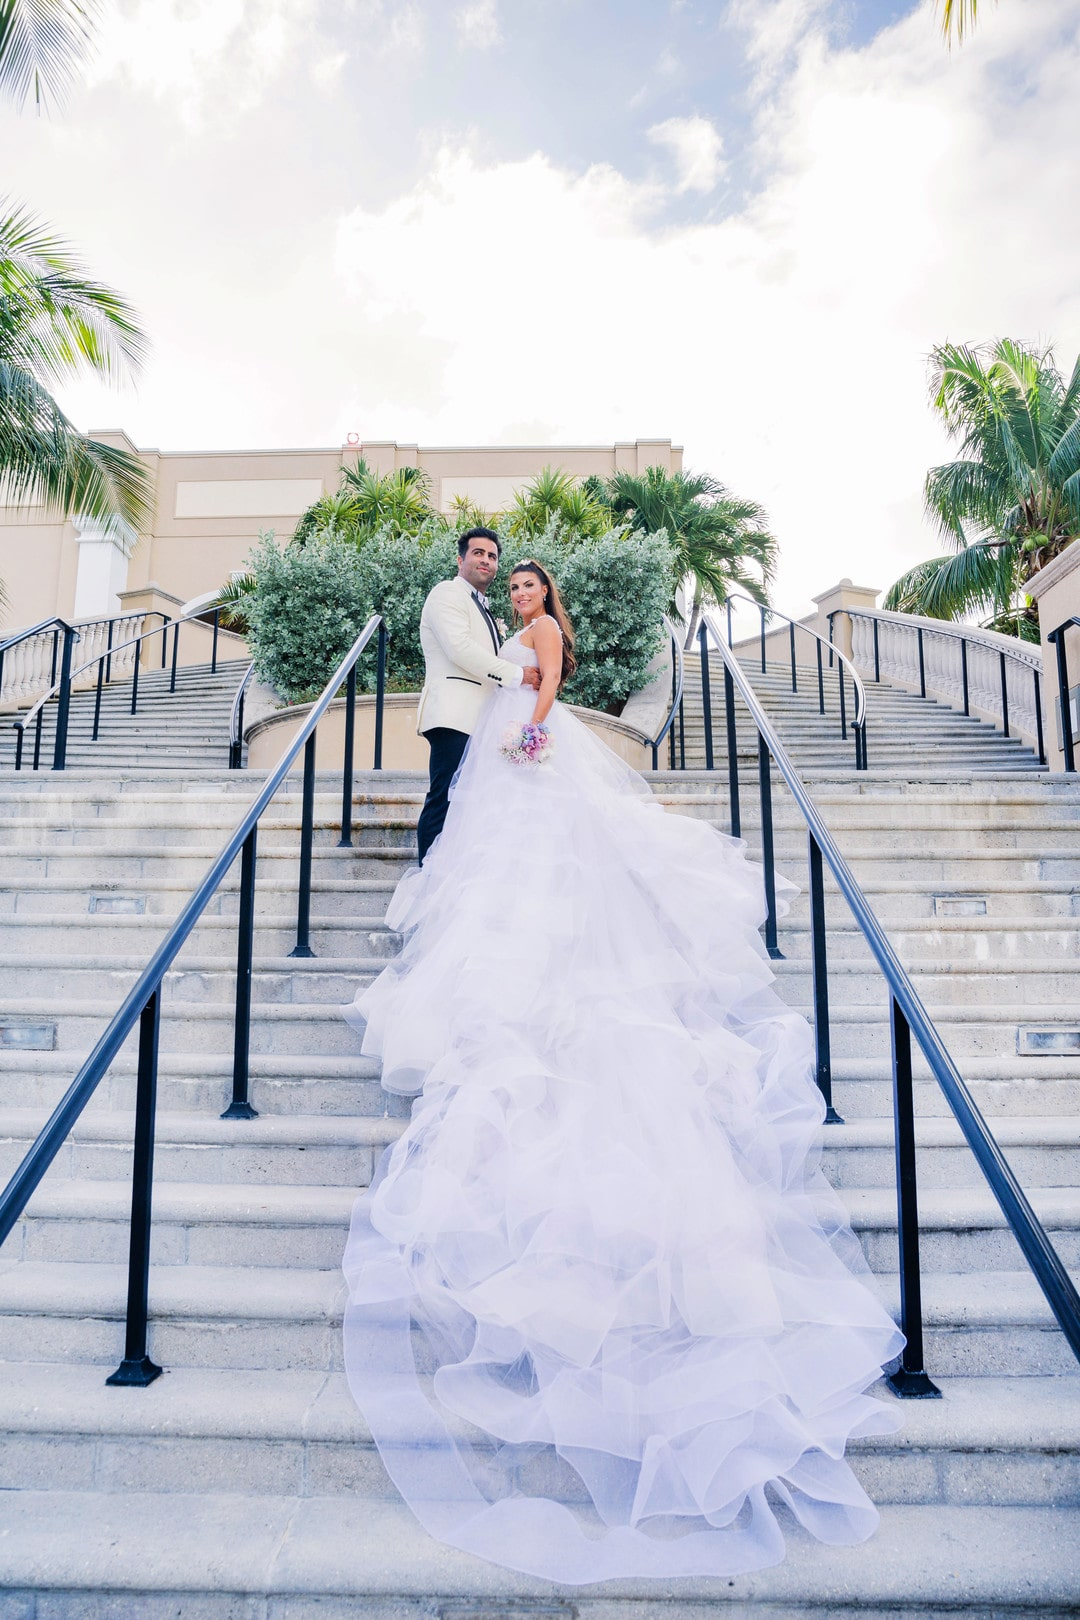 Eliza and Oren's English Garden Wedding In Grand Cayman, Photography by Rebecca Davidson Photography, Event Planning by GLDN Events for Luxury Destination Wedding Blog Adriana Weddings